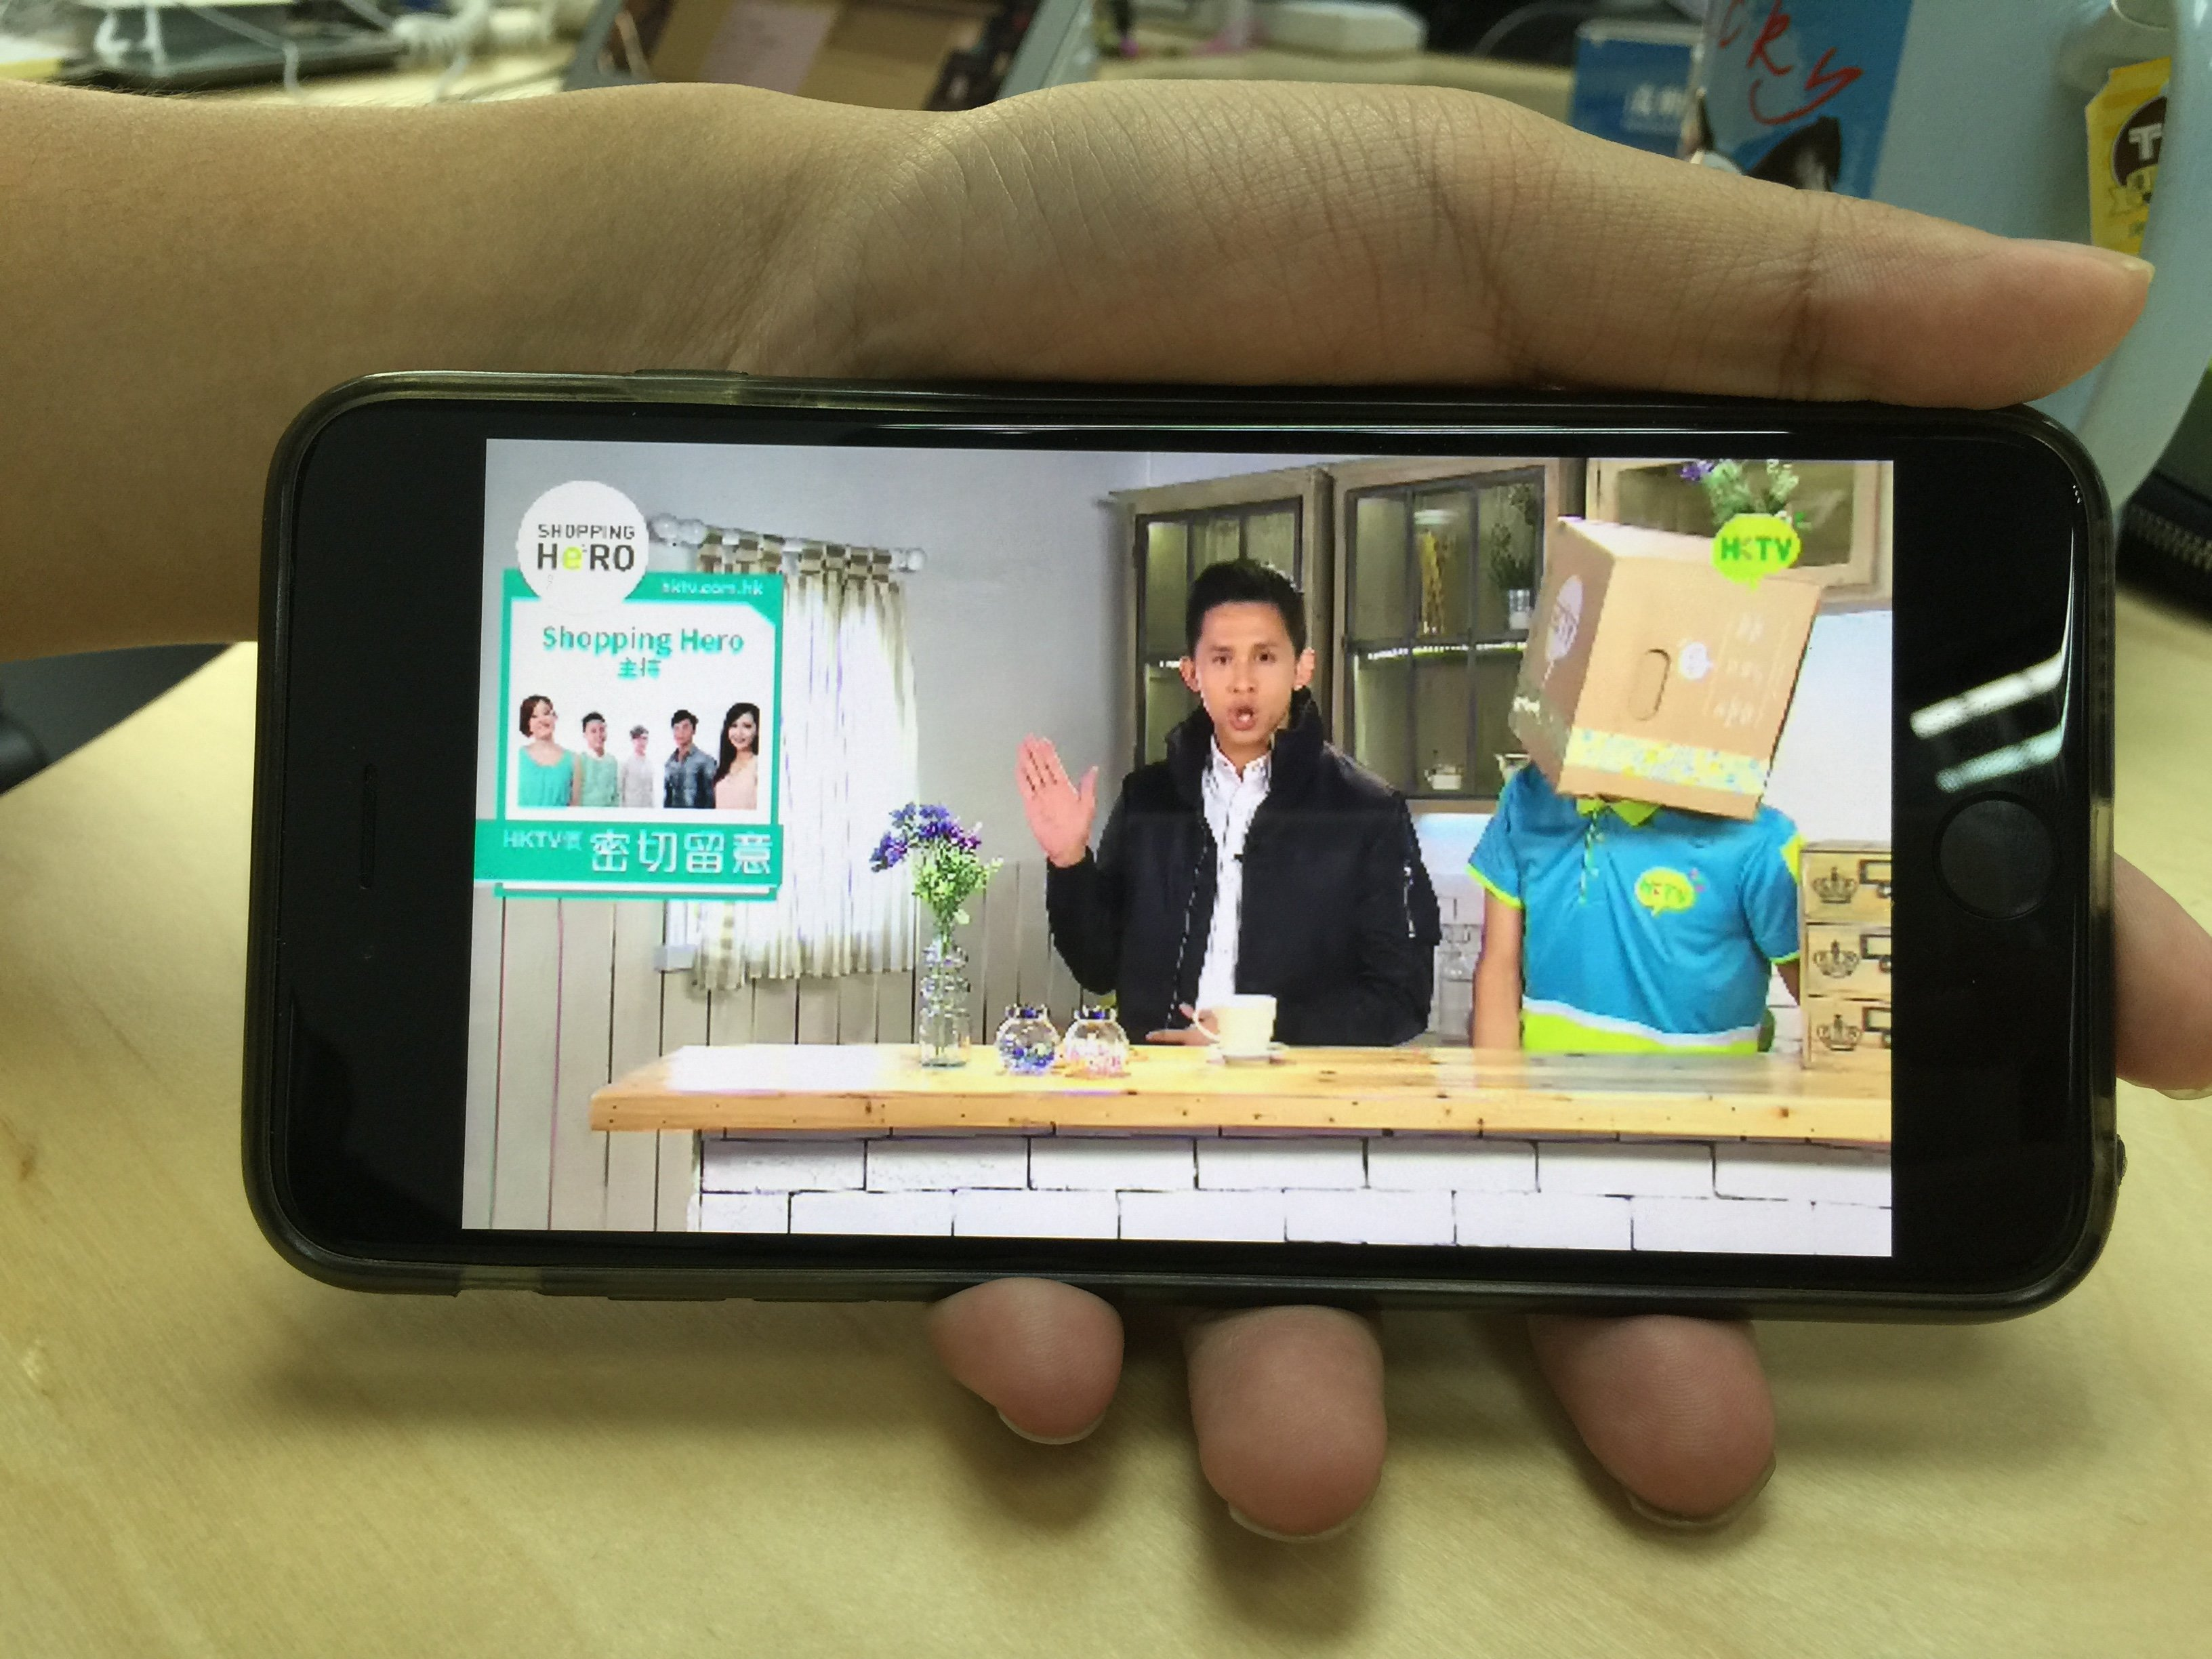 How to reroll HKTV without bandwidth in street_00